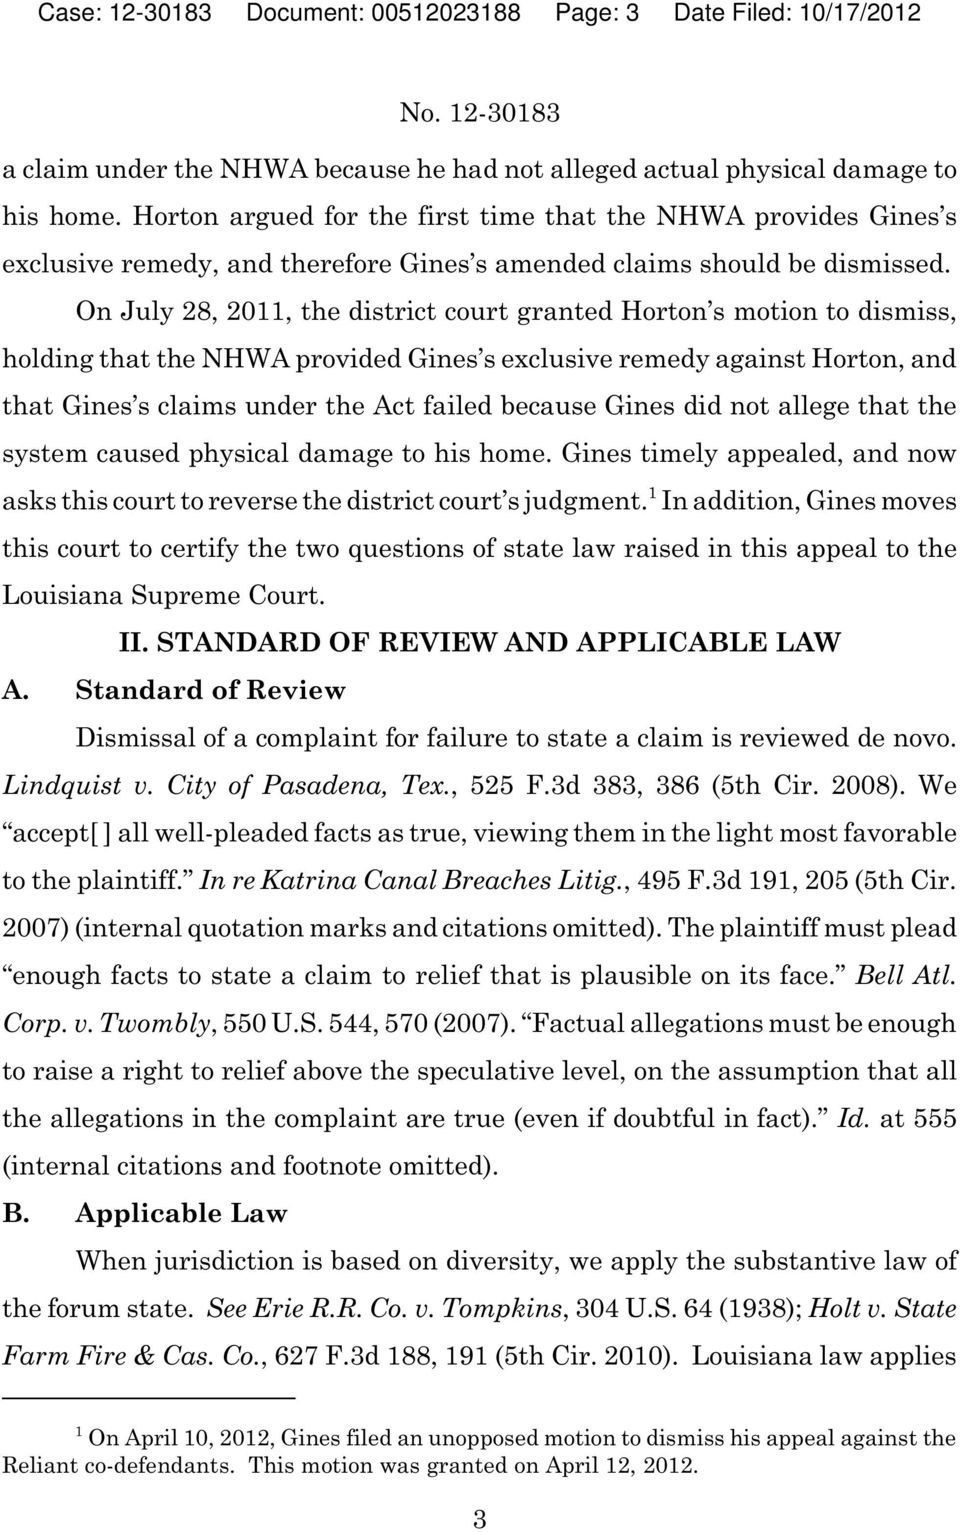 On July 28, 2011, the district court granted Horton s motion to dismiss, holding that the NHWA provided Gines s exclusive remedy against Horton, and that Gines s claims under the Act failed because